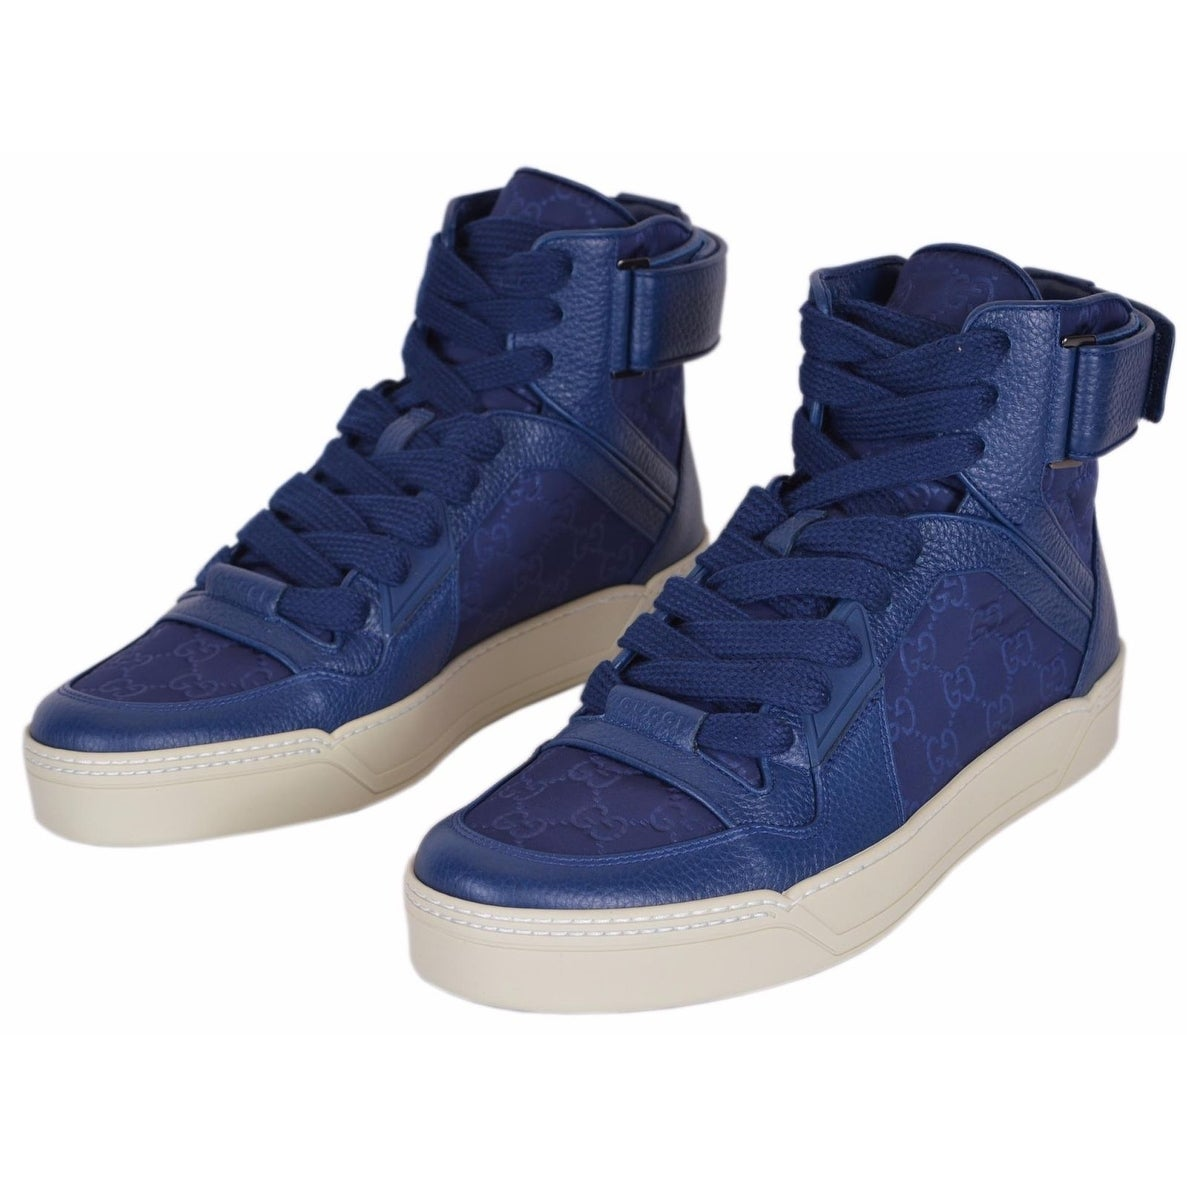 275bf7d6ff8 Shop Gucci Men s Blue Nylon GG Guccissima High Top Sneakers Trainers Shoes  10 - Free Shipping Today - Overstock - 19475351